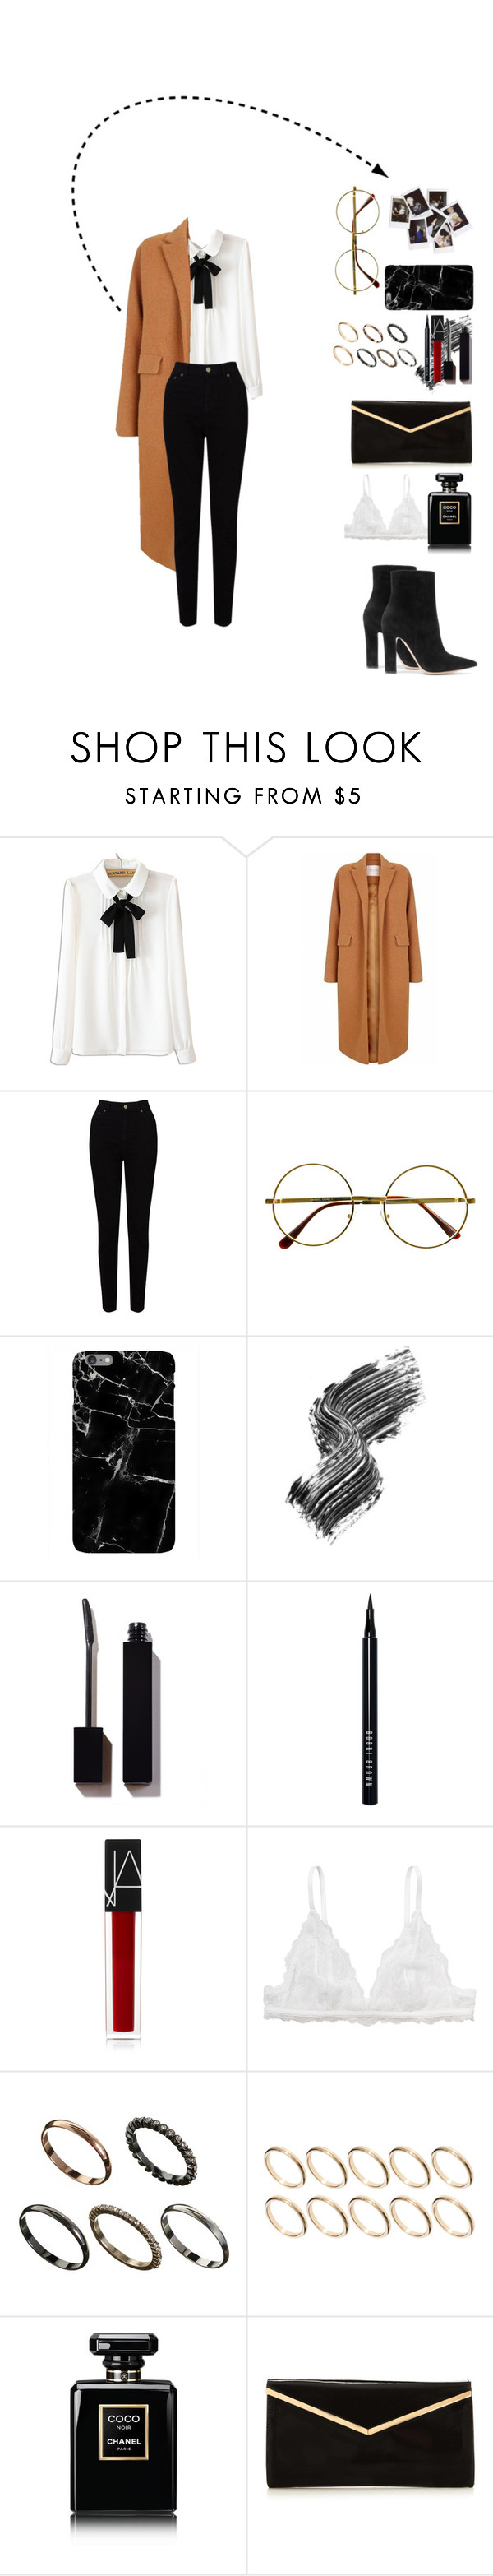 """camel"" by olive0live ❤ liked on Polyvore featuring WithChic, The 2nd Skin Co., EAST, Retrò, Nasty Gal, Harper & Blake, Illamasqua, Bobbi Brown Cosmetics, NARS Cosmetics and Monki"